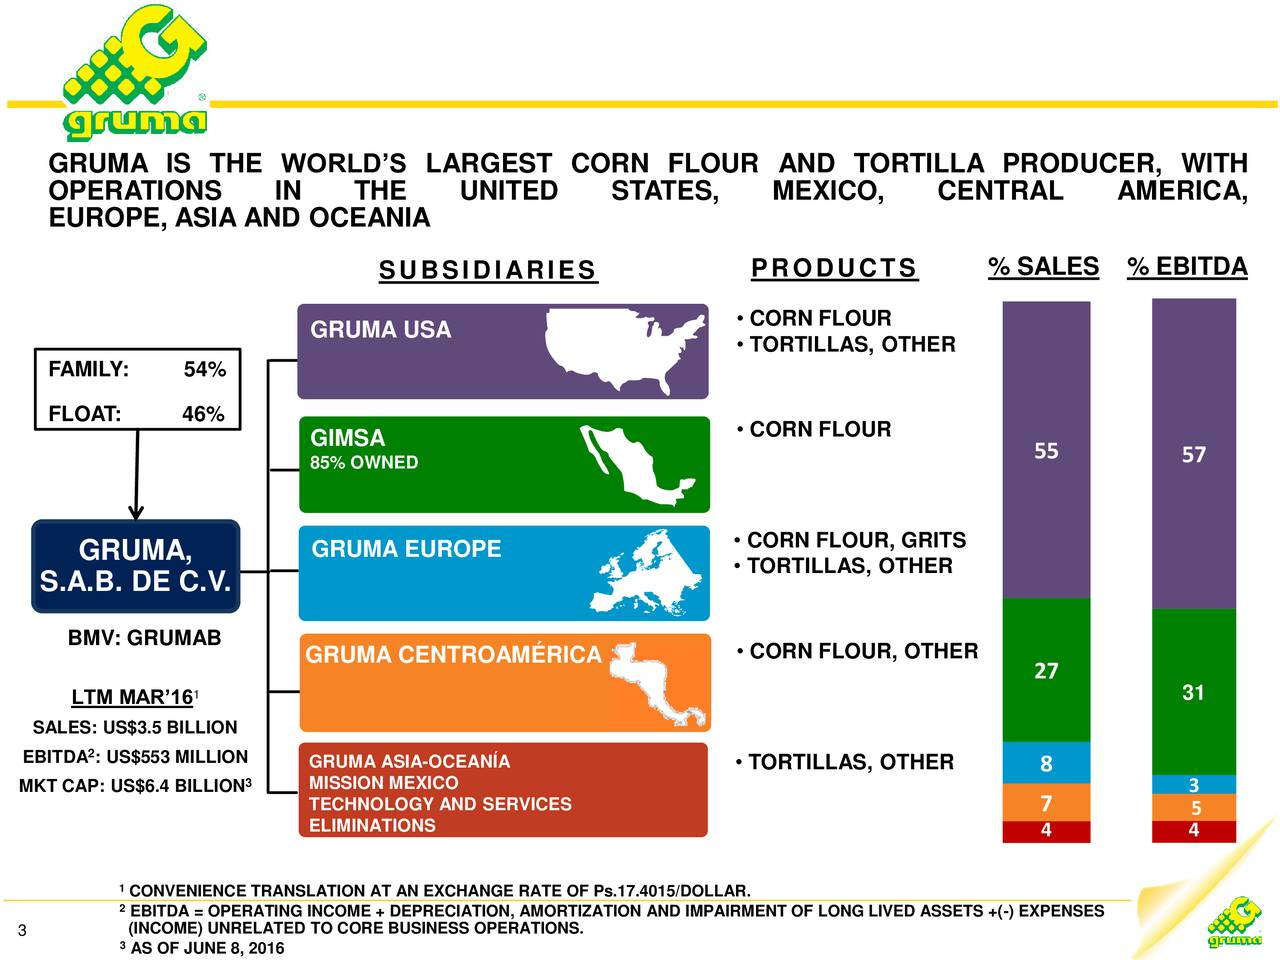 OPERATIONS IN THE UNITED STATES, MEXICO, CENTRAL AMERICA, EUROPE, ASIA AND OCEANIA SUBSIDIARIES PRODUCTS % SALES % EBITDA GRUMA USA  CORN FLOUR TORTILLAS, OTHER FAMILY: 54% FLOAT: 46% GIMSA  CORN FLOUR 85% OWNED 55 57 CORN FLOUR, GRITS GRUMA, GRUMA EUROPE  TORTILLAS, OTHER S.A.B. DE C.V. BMV: GRUMAB GRUMA CENTROAMRICA  CORN FLOUR, OTHER 1 27 LTM MAR16 31 SALES: US$3.5 BILLION 2 EBITDA : US$553 MILLION GRUMA ASIA-OCEANA  TORTILLAS, OTHER 8 MKT CAP: US$6.4 BILLION MISSION MEXICO 3 TECHNOLOGY AND SERVICES 7 5 ELIMINATIONS 4 4 1CONVENIENCE TRANSLATION AT AN EXCHANGE RATE OF Ps.17.4015/DOLLAR. 2EBITDA = OPERATING INCOME + DEPRECIATION, AMORTIZATION AND IMPAIRMENT OF LONG LIVED ASSETS +(-) EXPENSES 3 3(INCOME) UNRELATED TO CORE BUSINESS OPERATIONS.